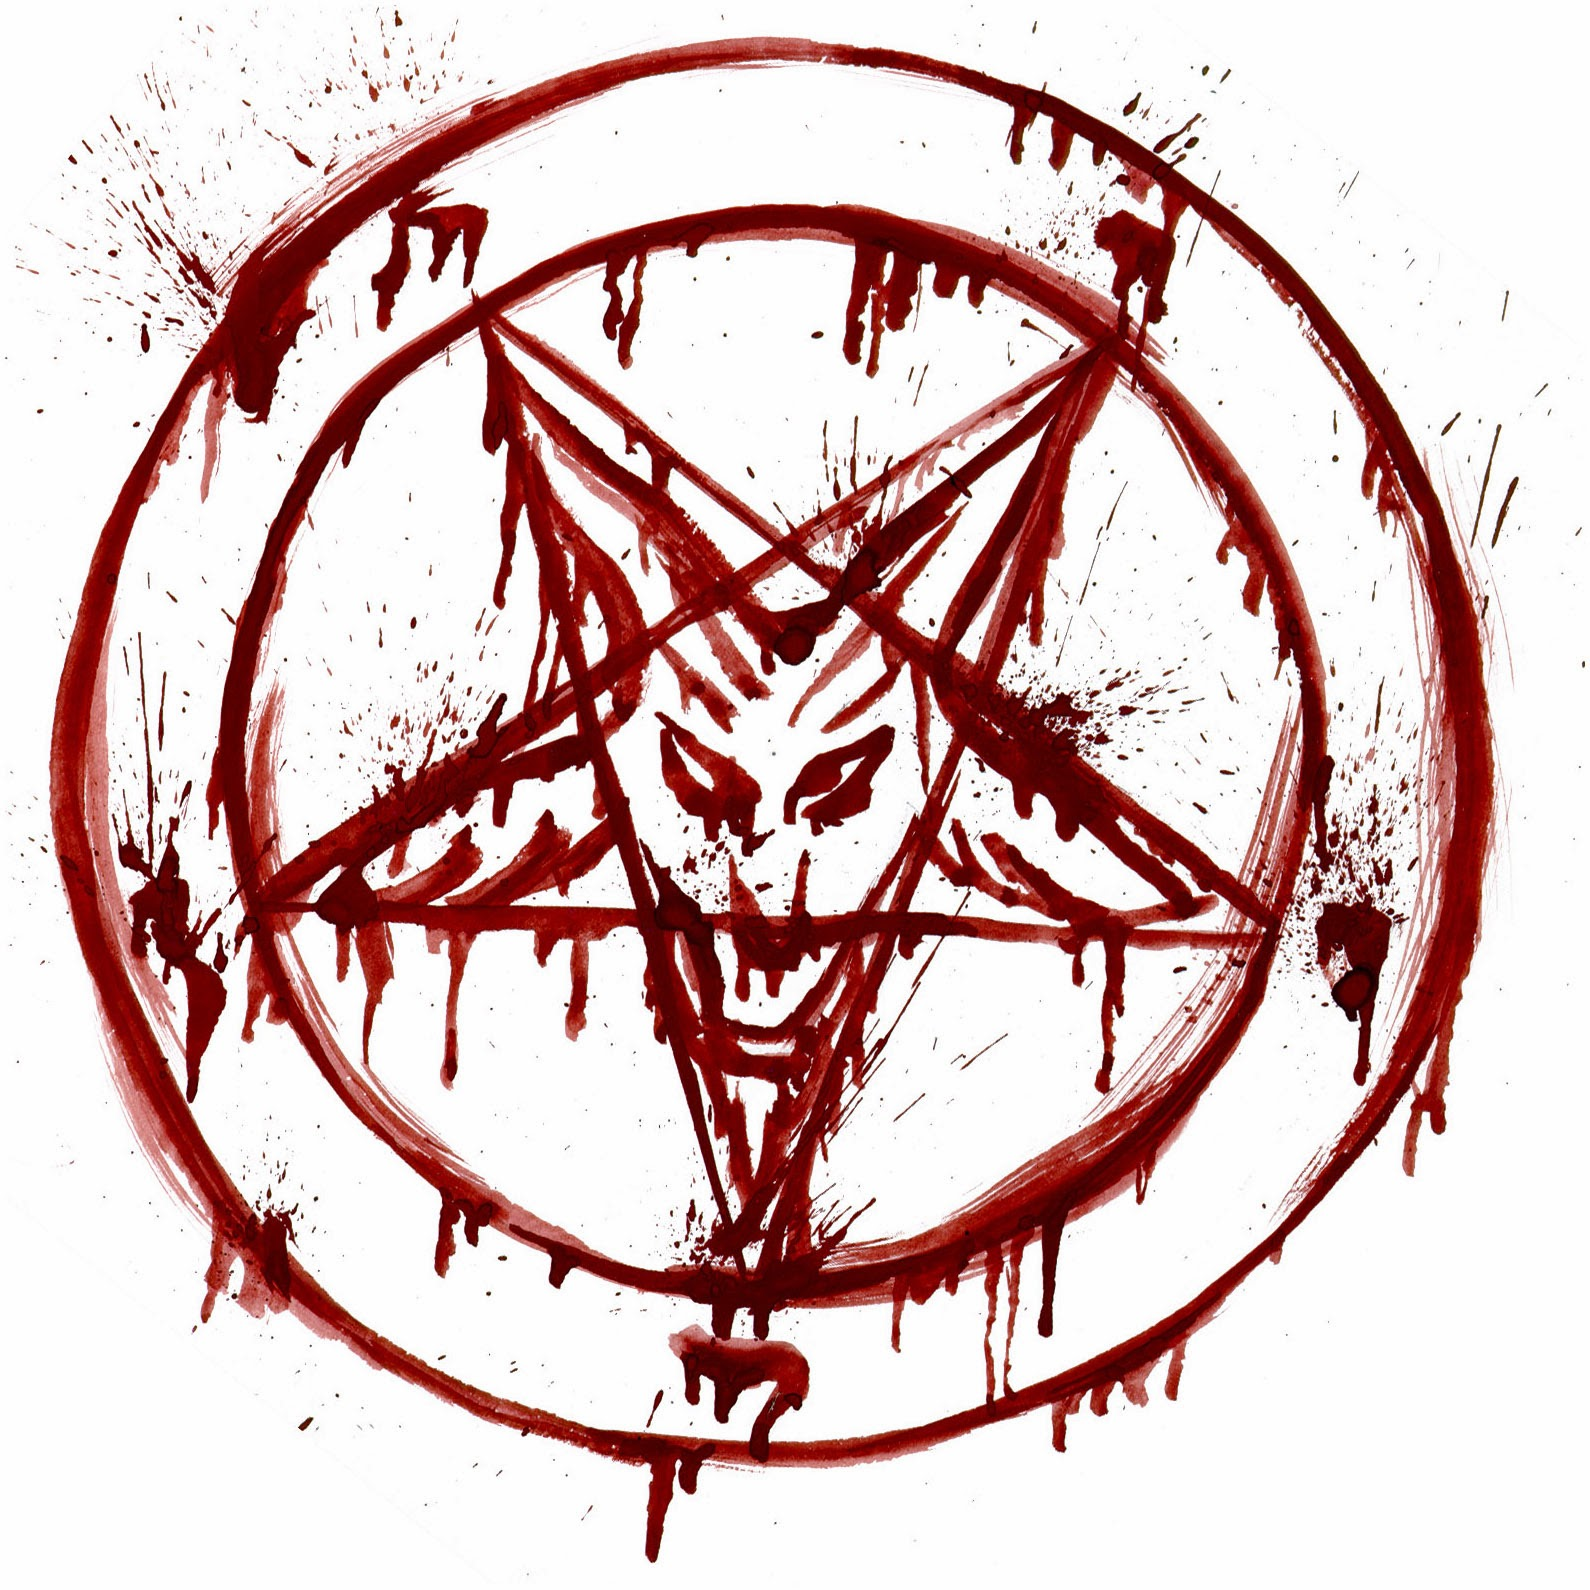 11 satanic commandments diabolical literature when i first came upon the idea of satanism i was filled with a flurry of emotions i didnt know what to think of a religion that idolizes the devil biocorpaavc Images